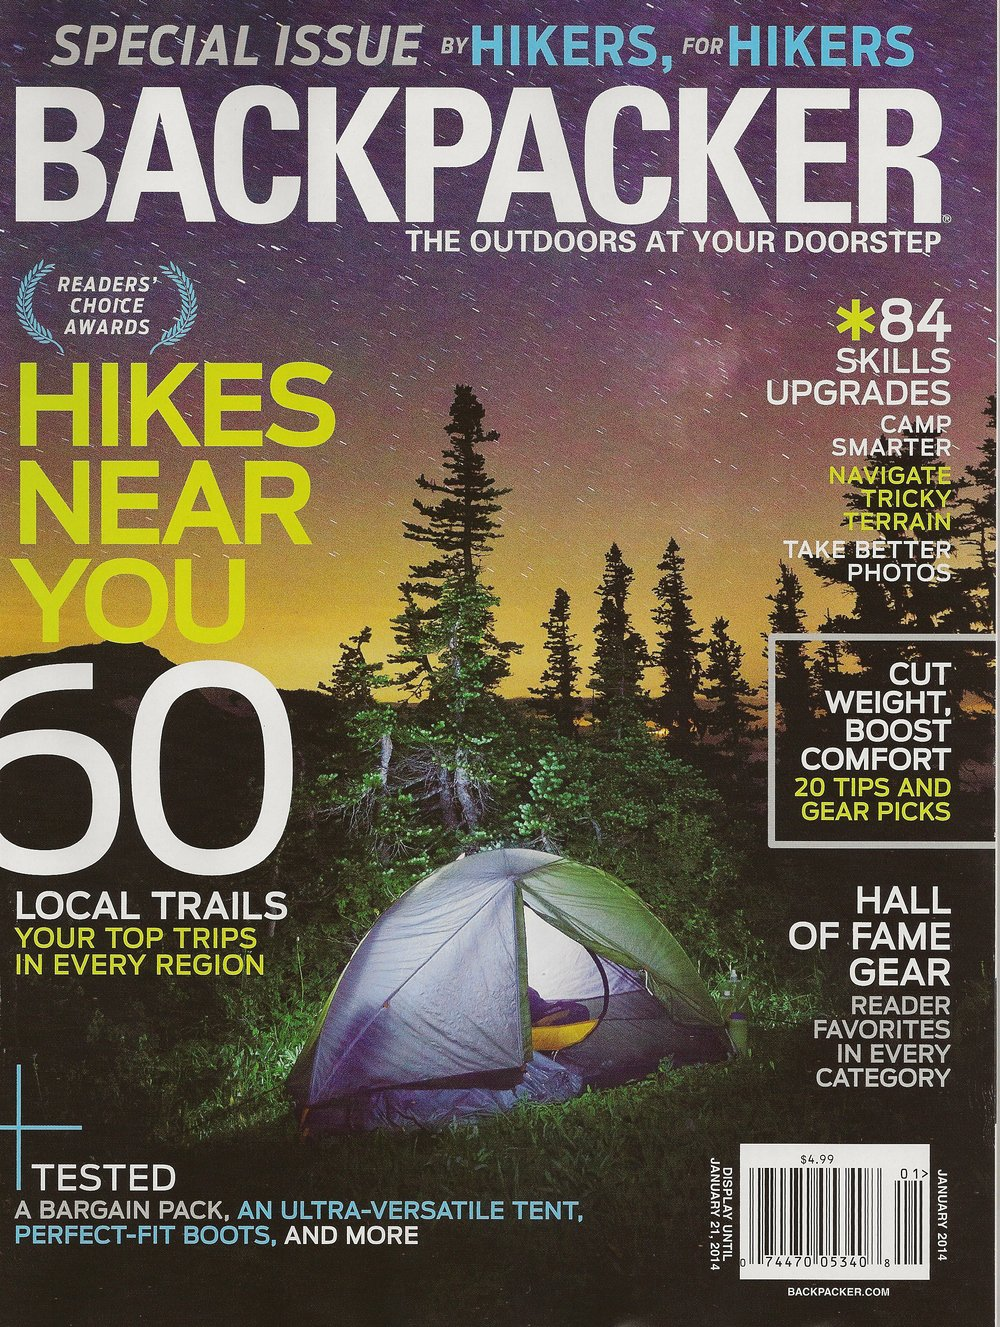 BACKPACKER Magazine Jan 2014.JPG